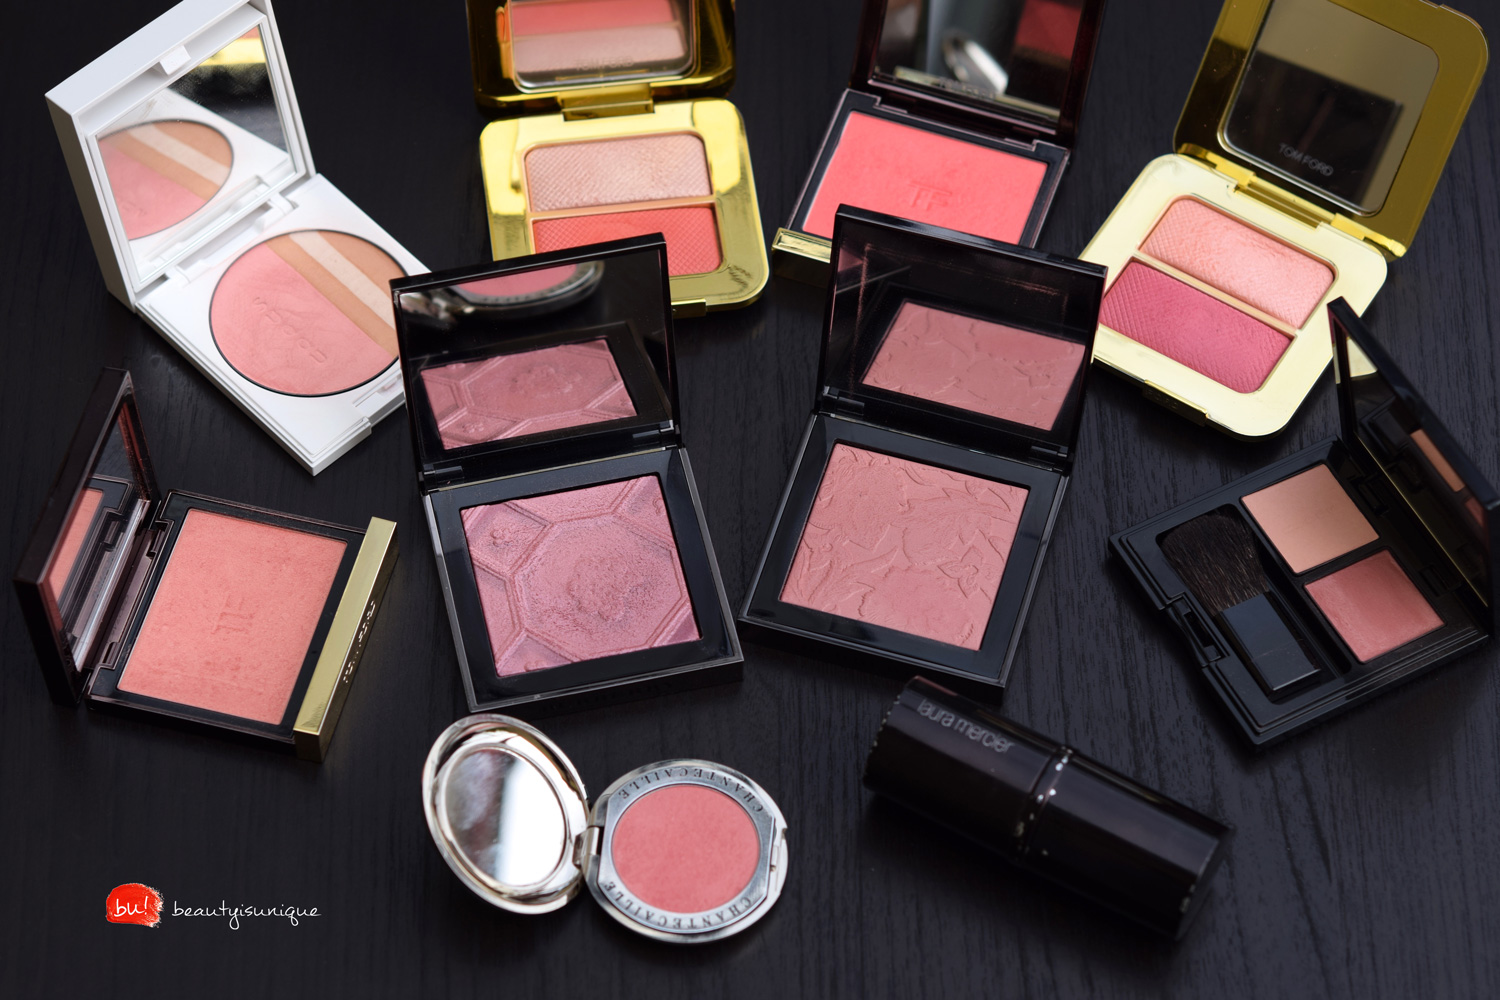 Burberry-blush-palette-2017-swatches